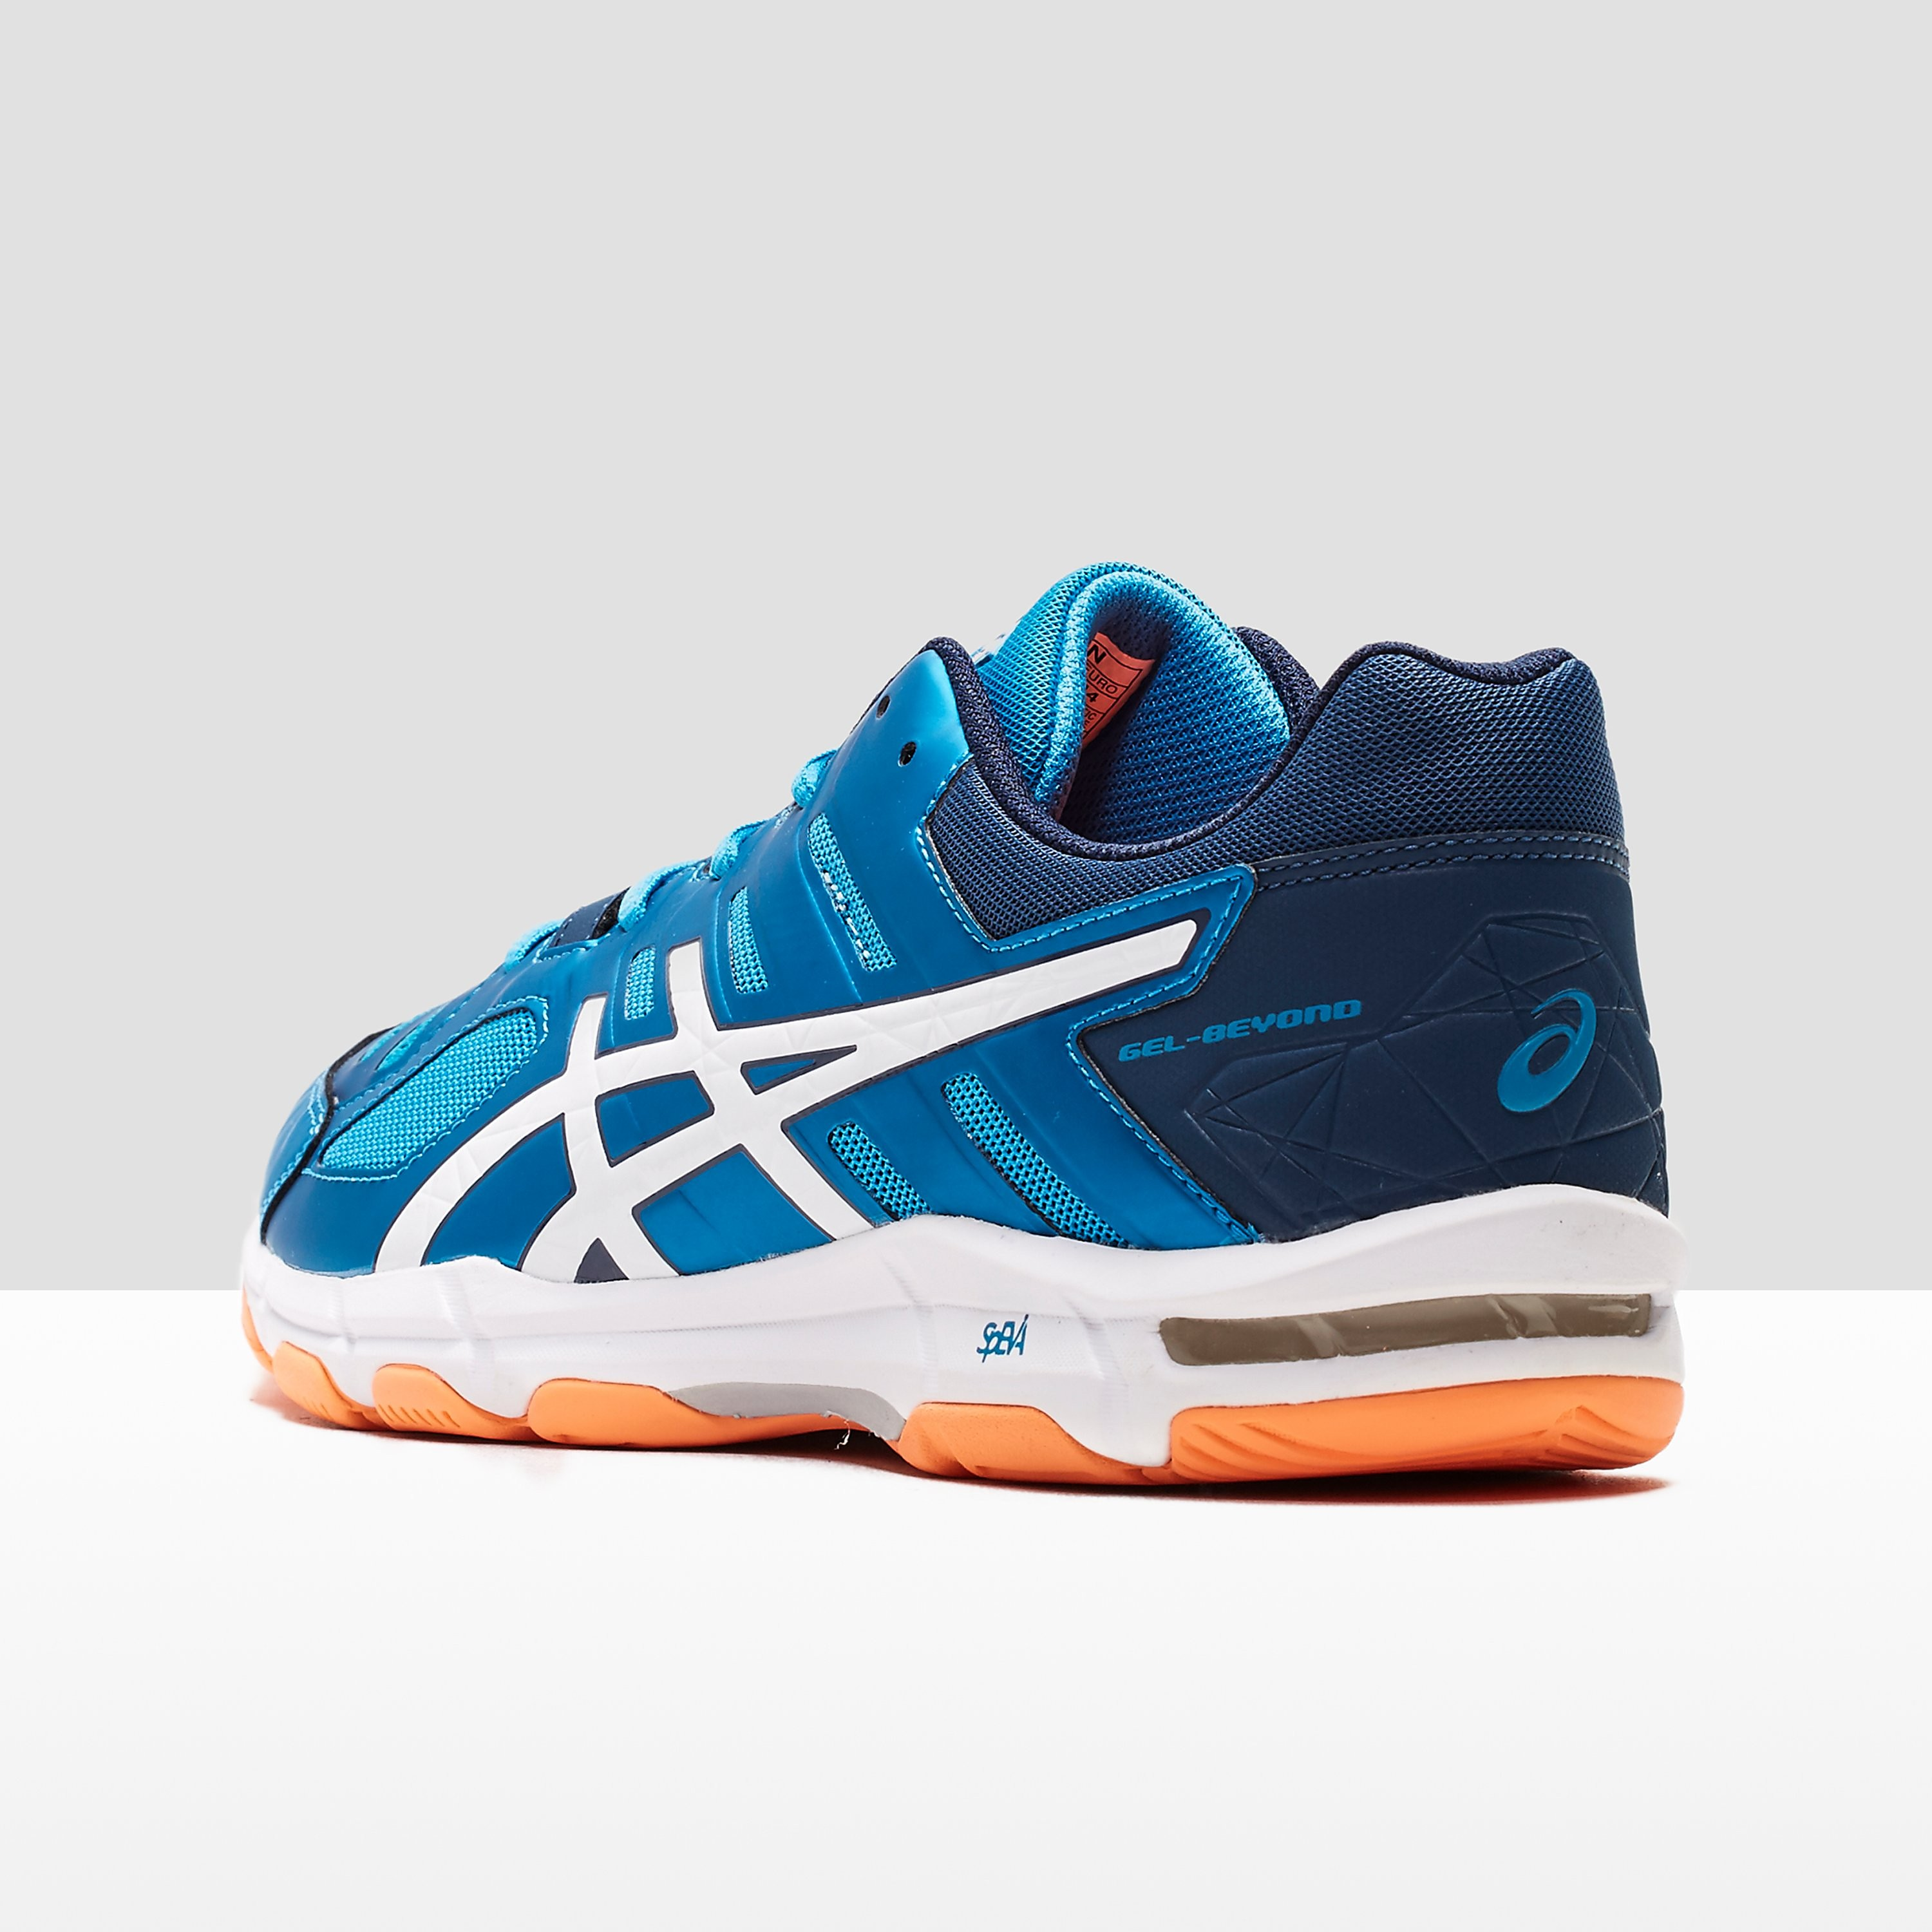 Asics GEL-BEYOND 5 BLUE